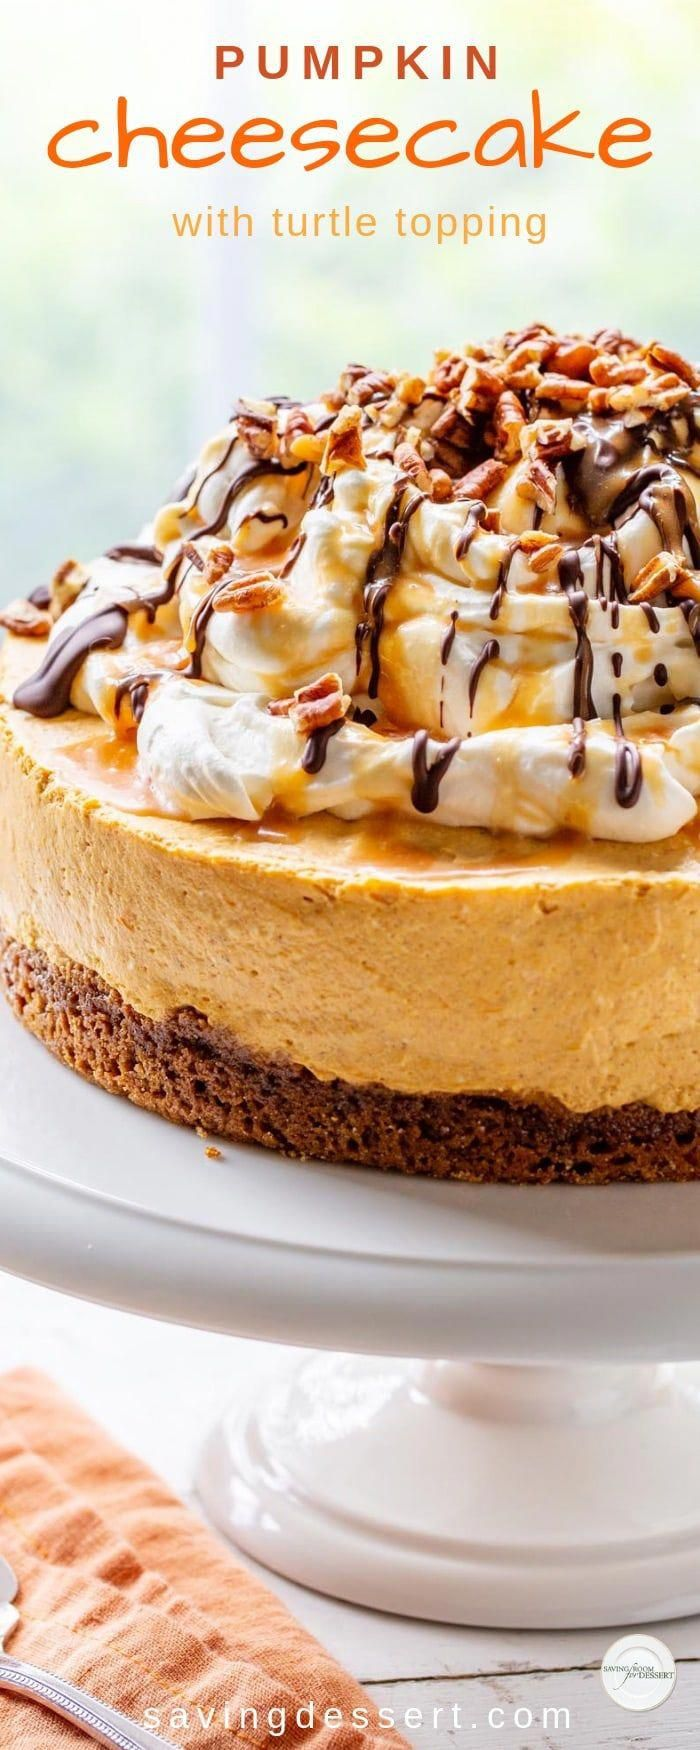 Pumpkin Cheesecake with Turtle Topping #pumpkincheesecake